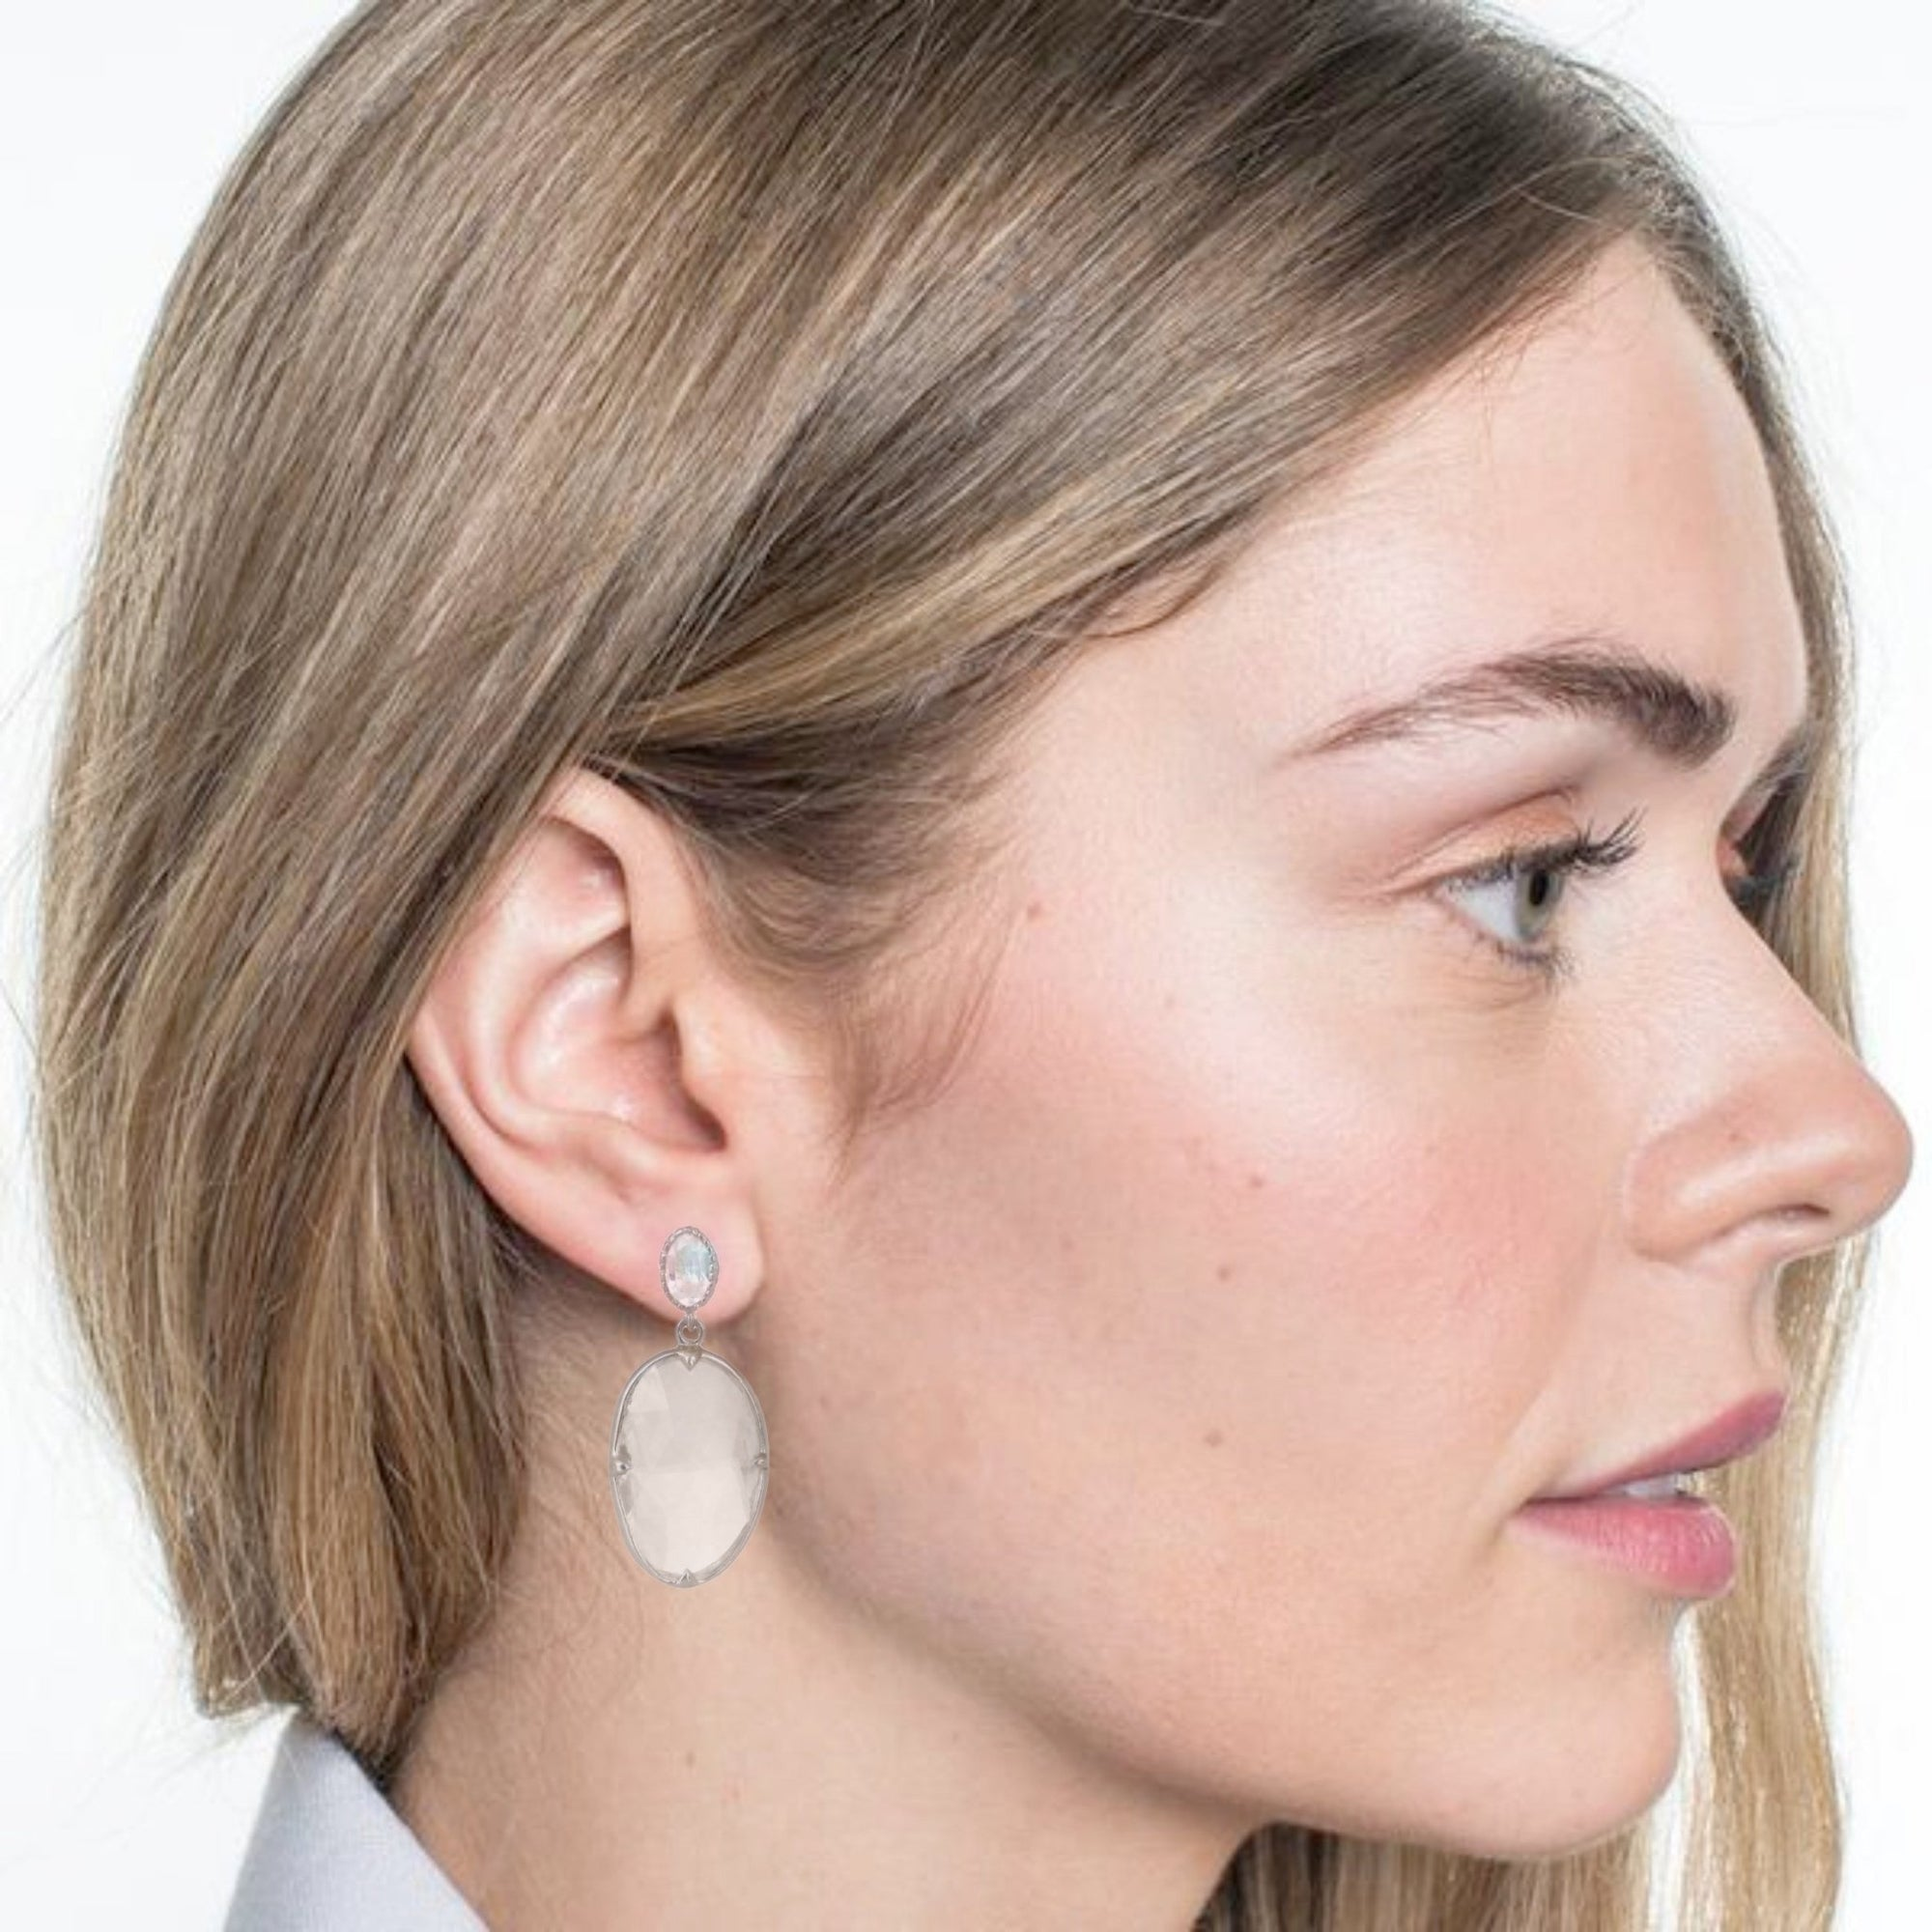 FEARLESS EARRINGS - WHITE TOPAZ & SILVER - SO PRETTY CARA COTTER